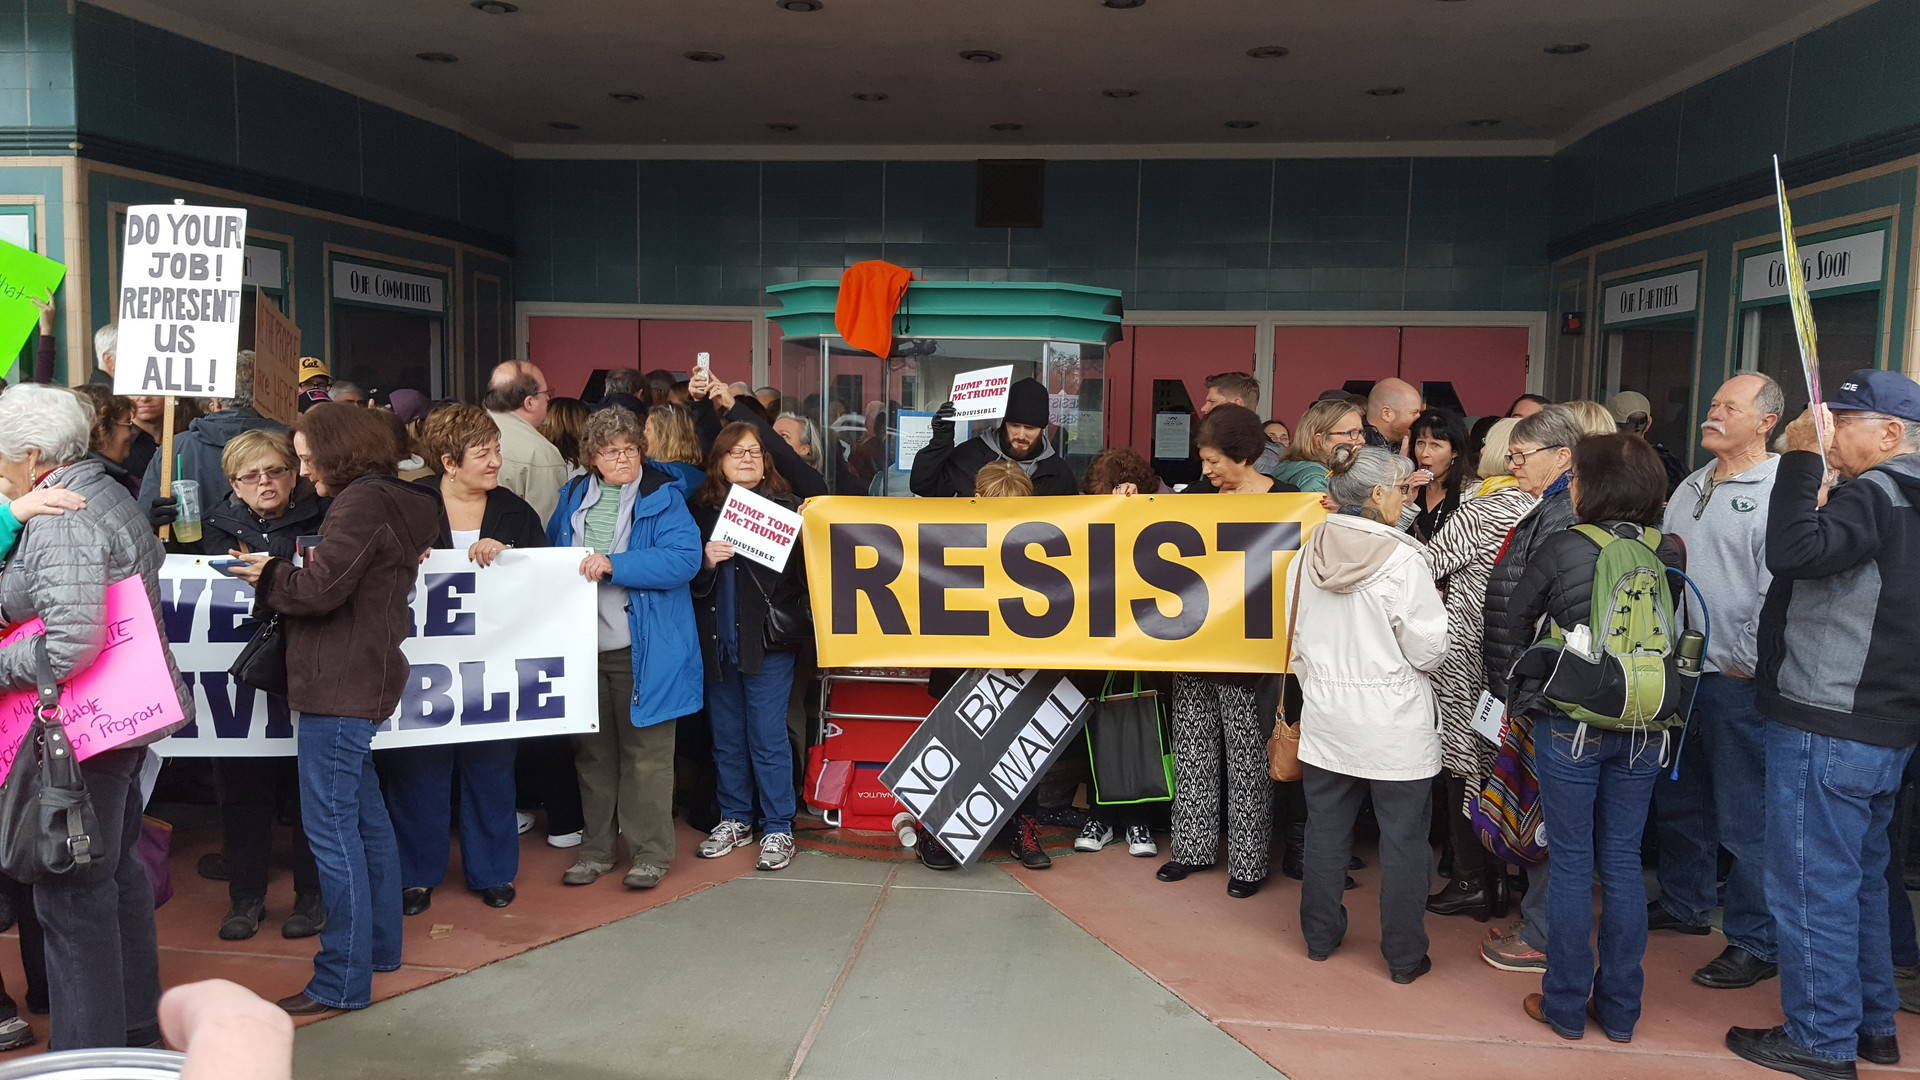 Protesters wait to get into a town hall meeting held by Rep. Tom McClintock (R-Calif.) in Roseville, CA on Saturday February 4, 2017. Katie Orr/KQED